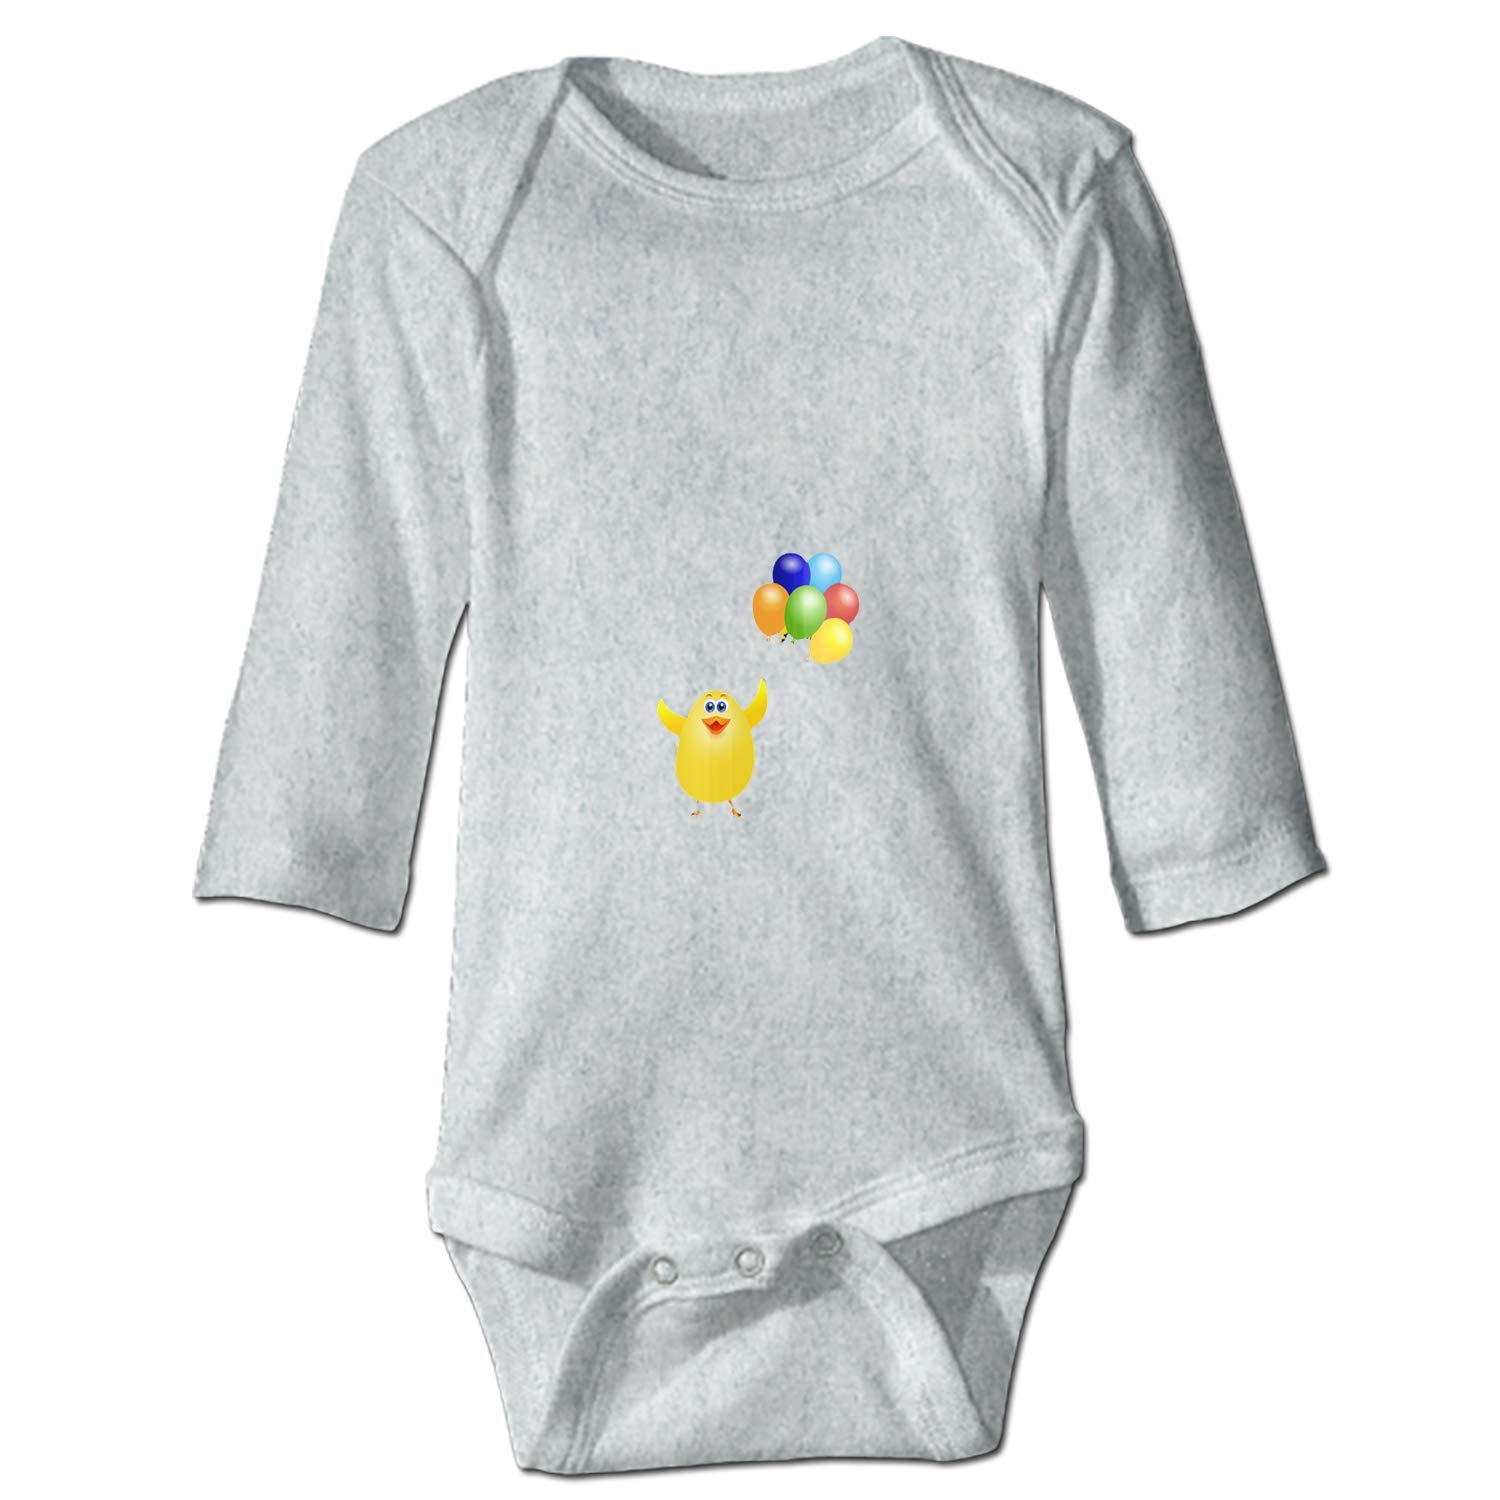 Baby Yhghggjh Bodysuits Long Sleeve Rompers Outfits Casual Clothes